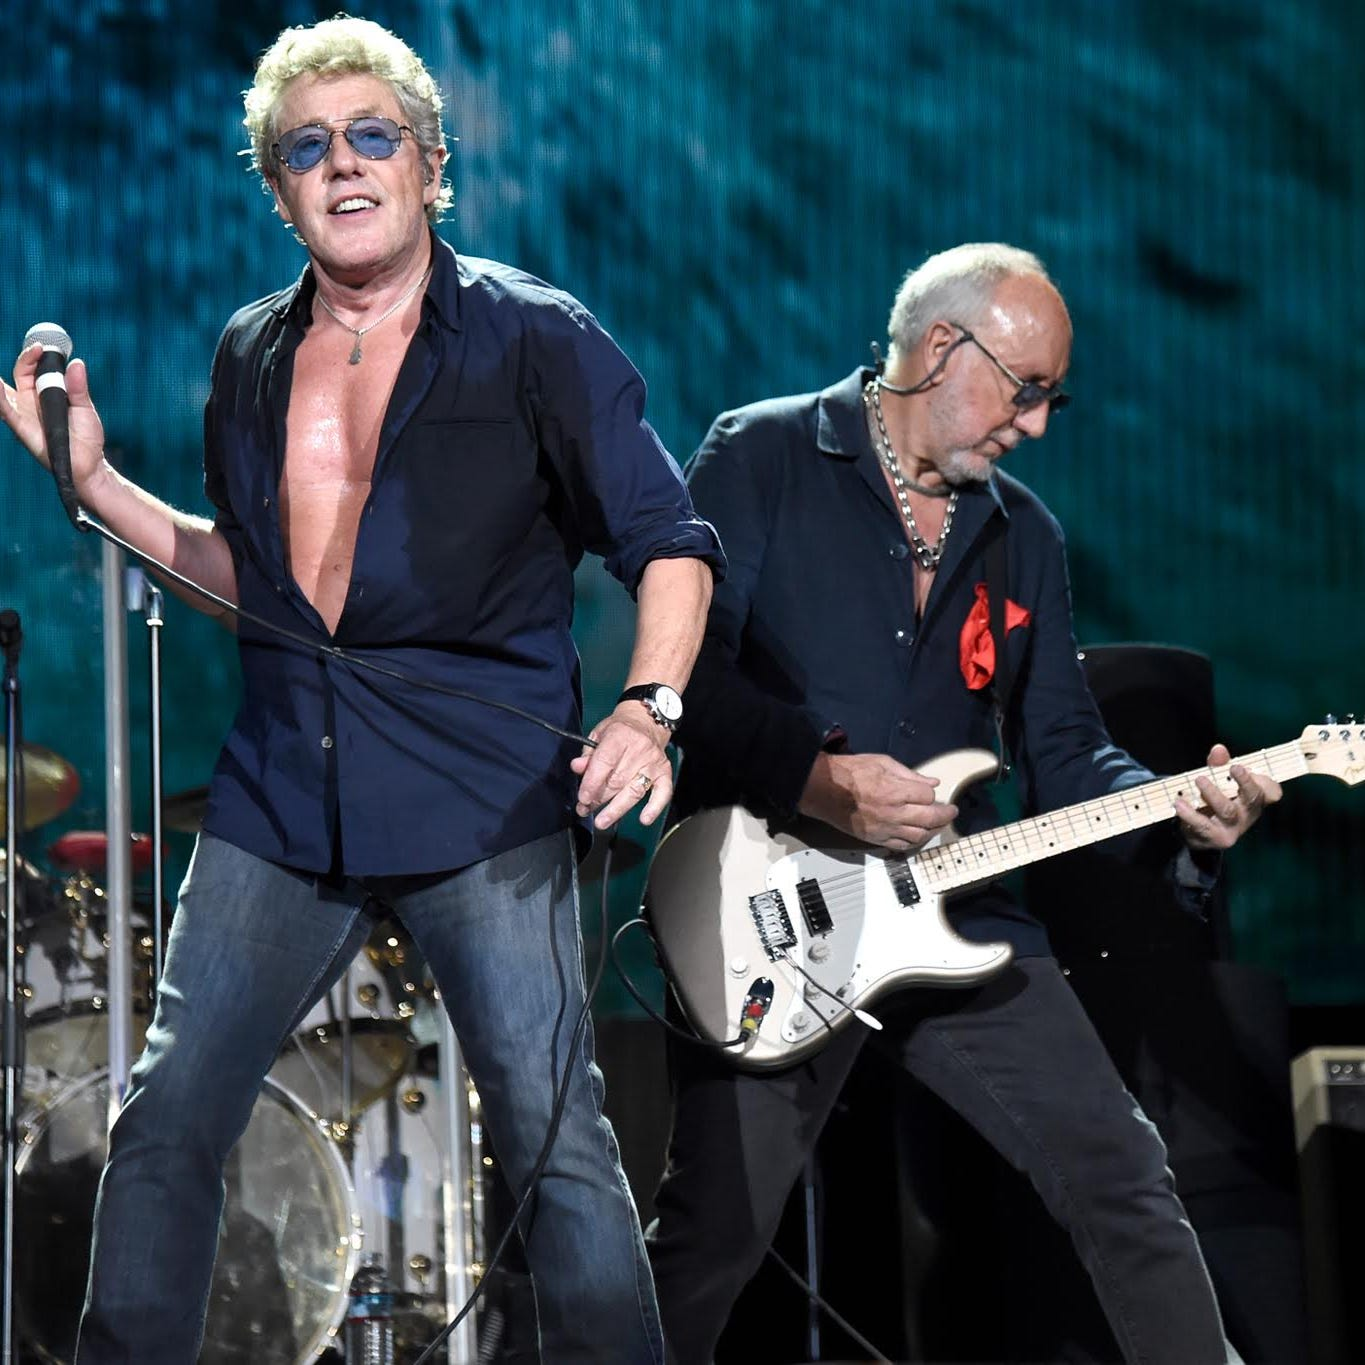 Pete Townshend and Roger Daltrey meet in the middle to keep the Who moving after 55 years